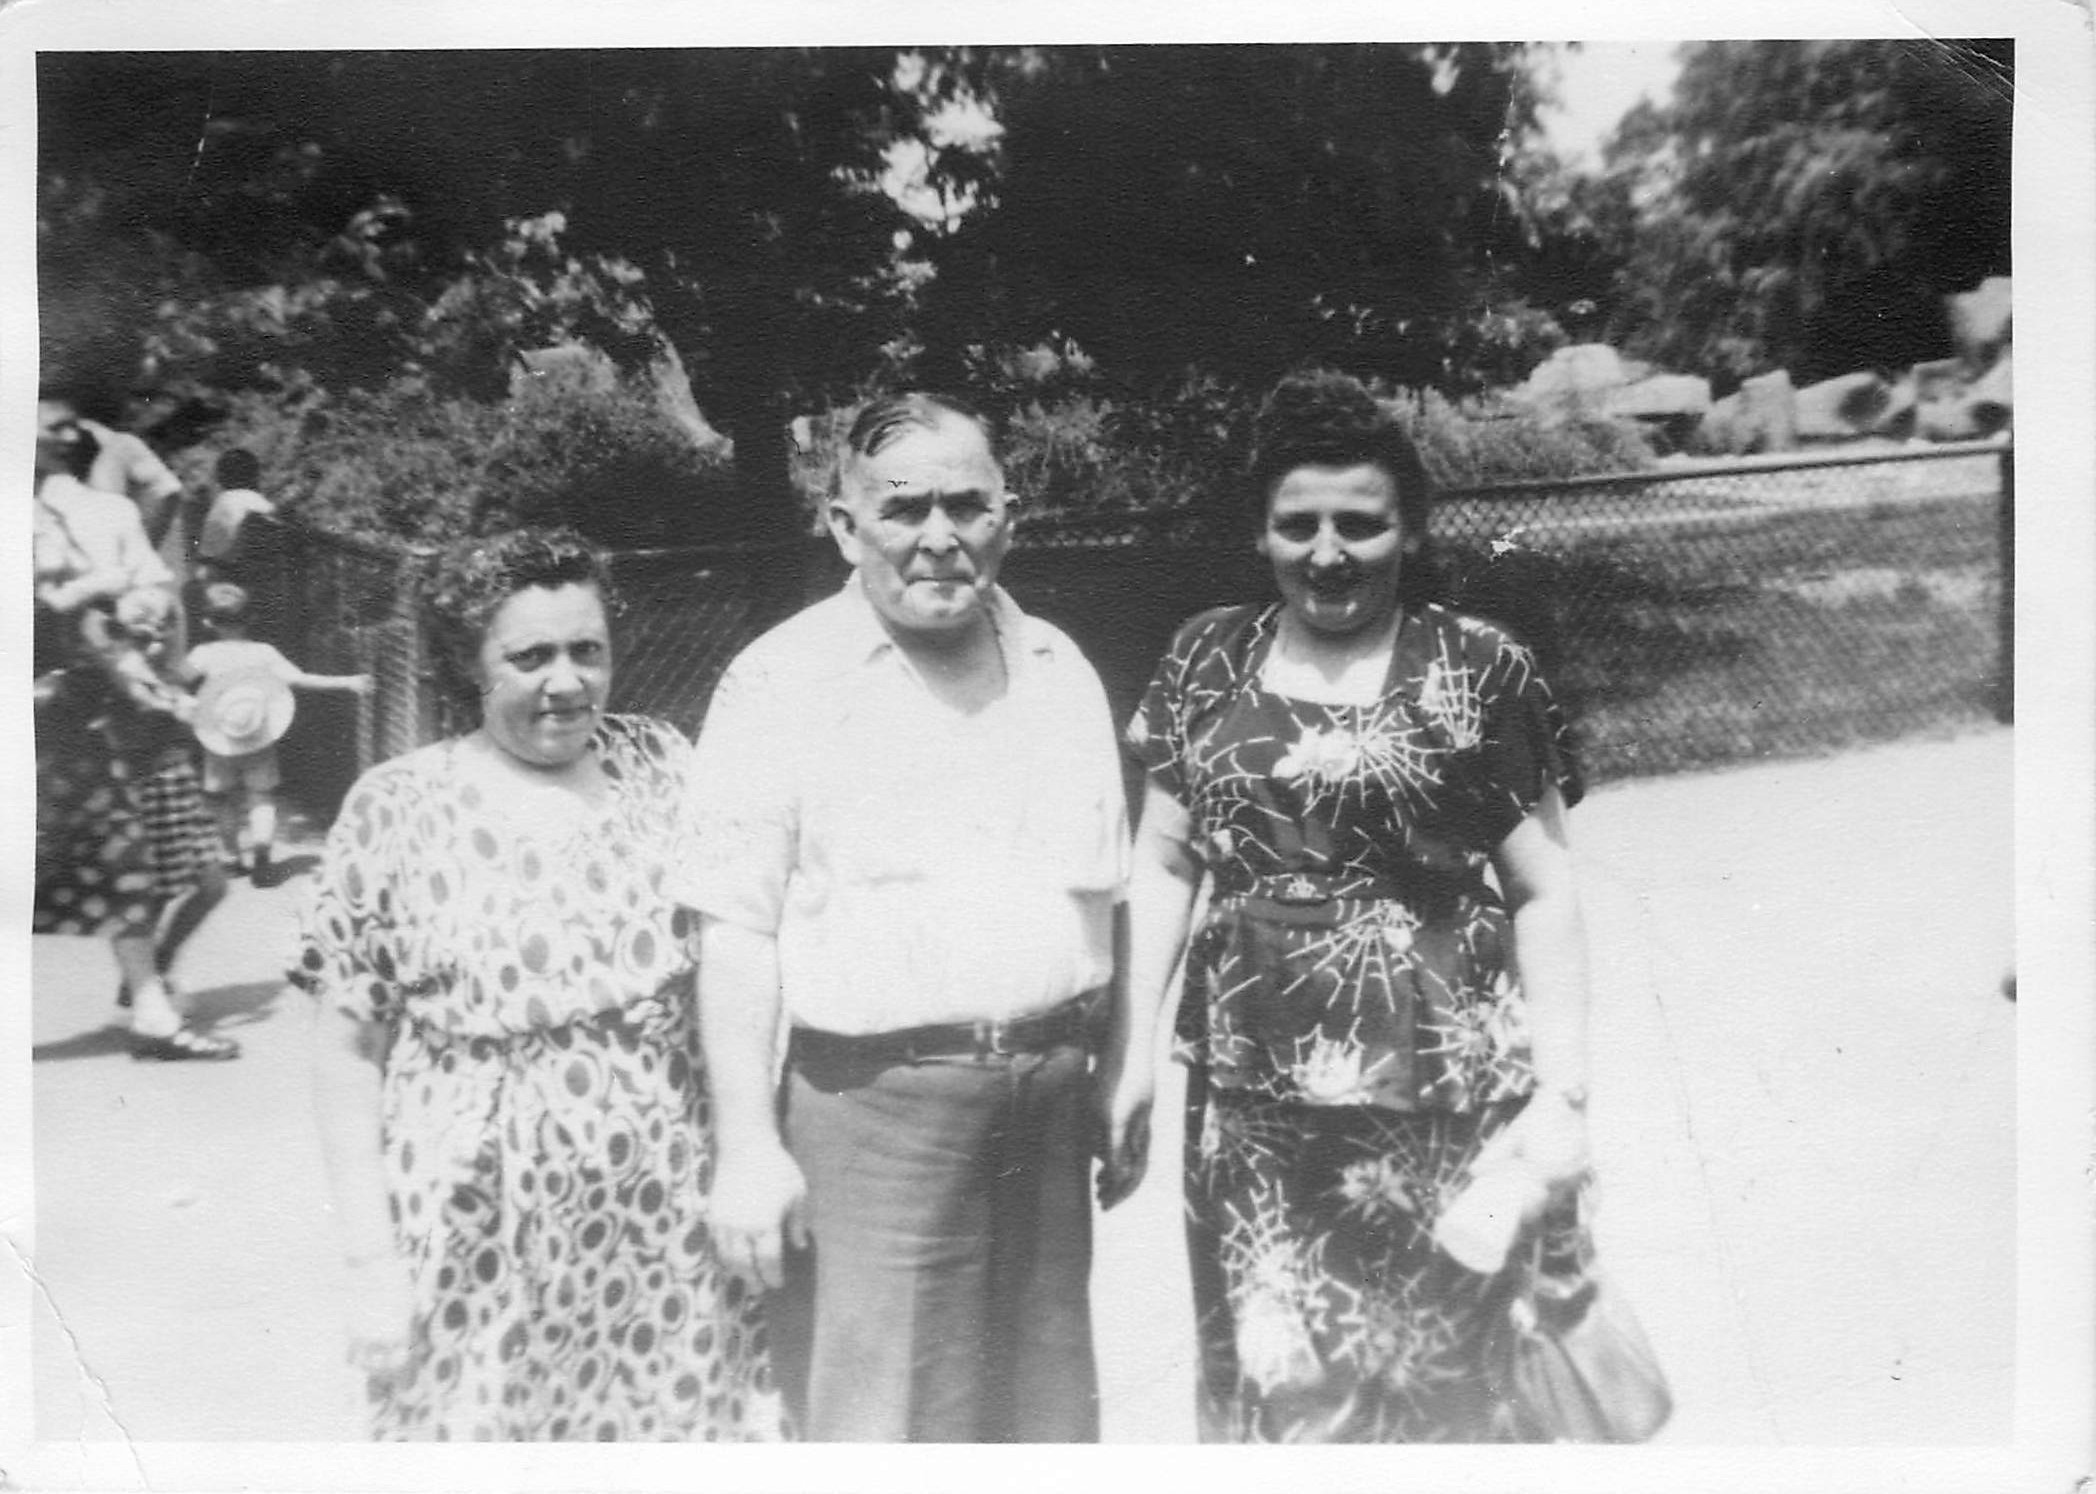 From left to right: Sylvia Steinberg; Jacob Steinberg; and Gitel Gelman, Jacob's niece